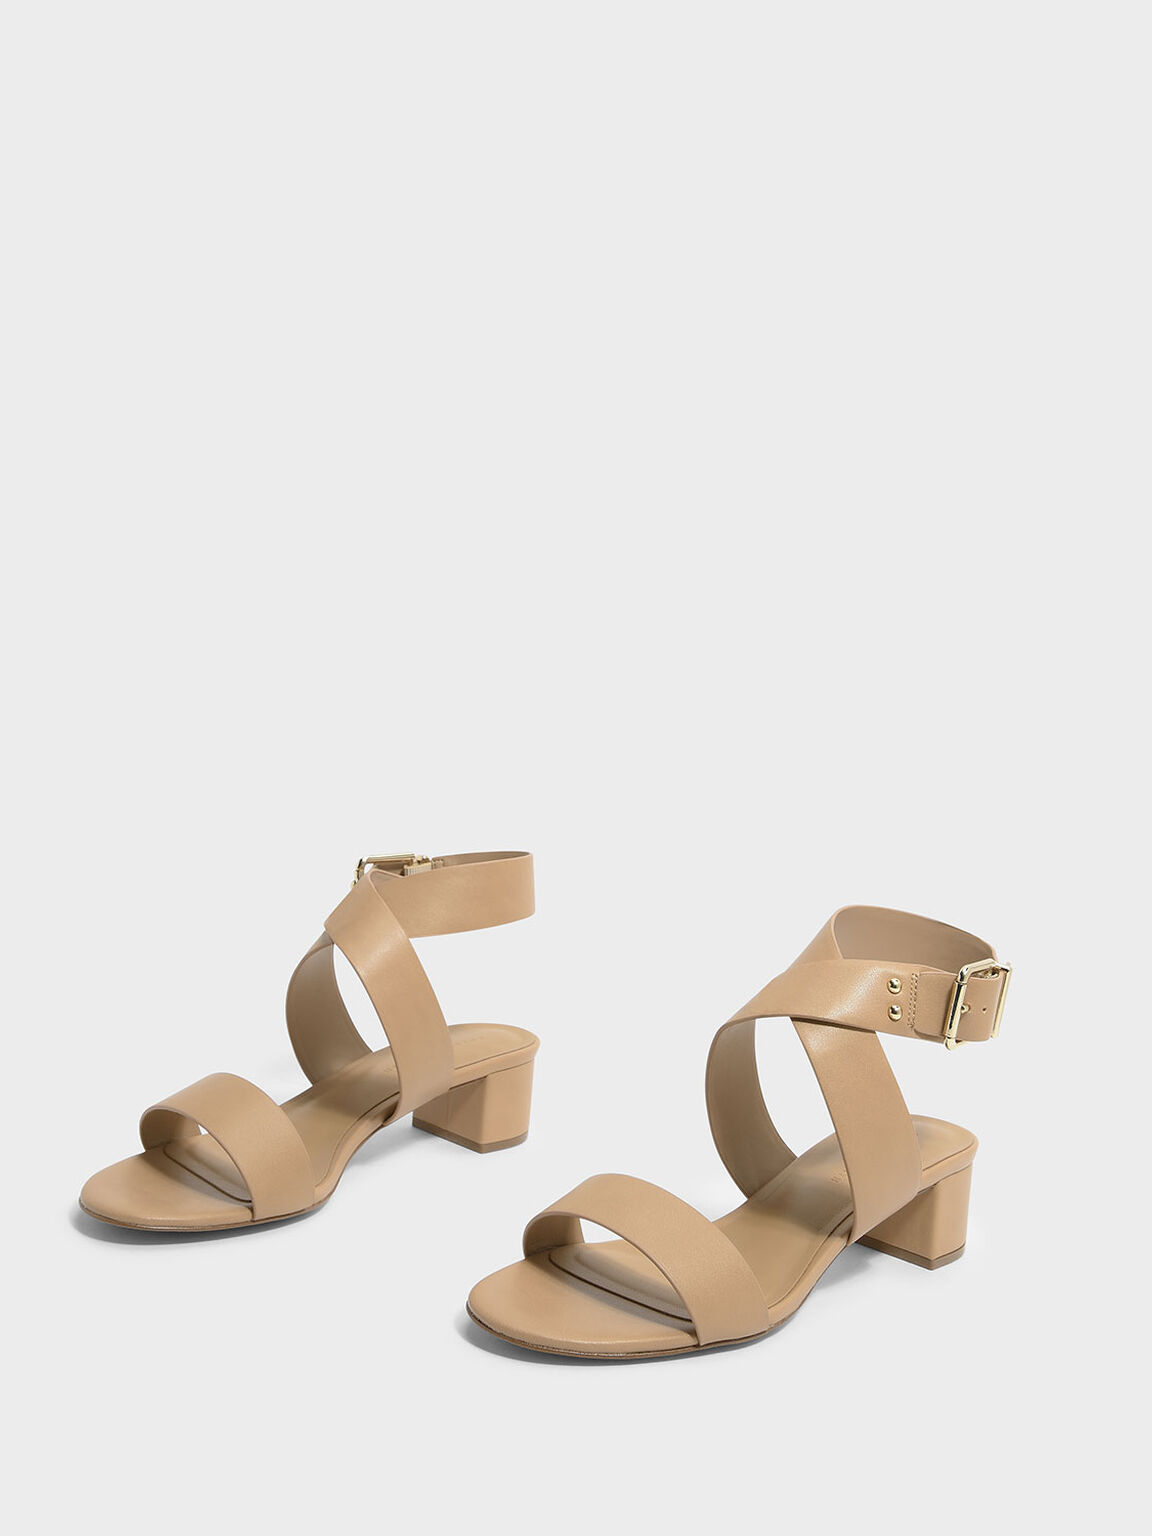 Criss Cross Thick Strap Heeled Sandals, Beige, hi-res